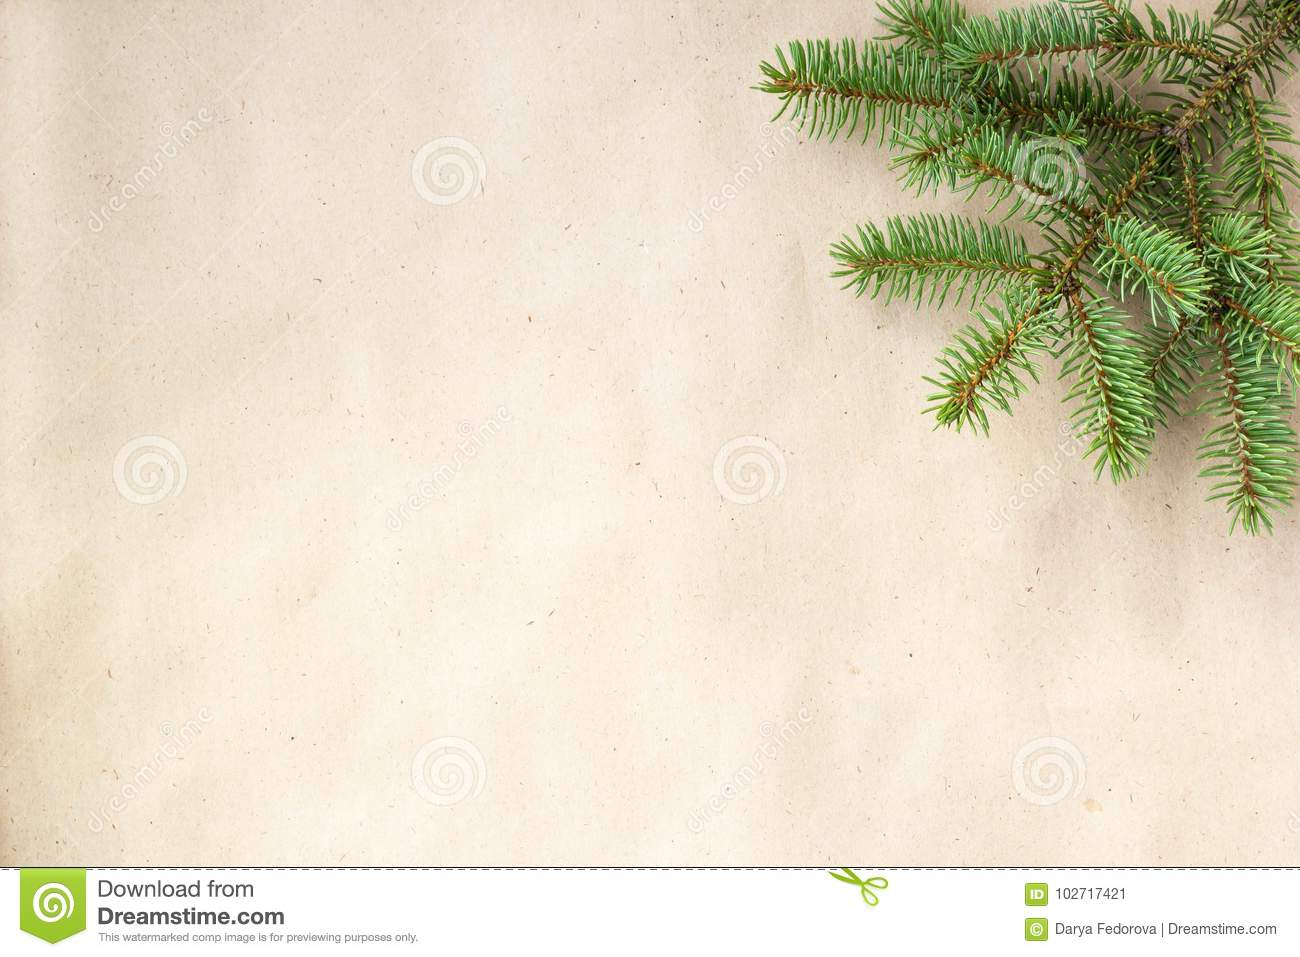 Fir branches border on light rustic background, good for christmas backdrop